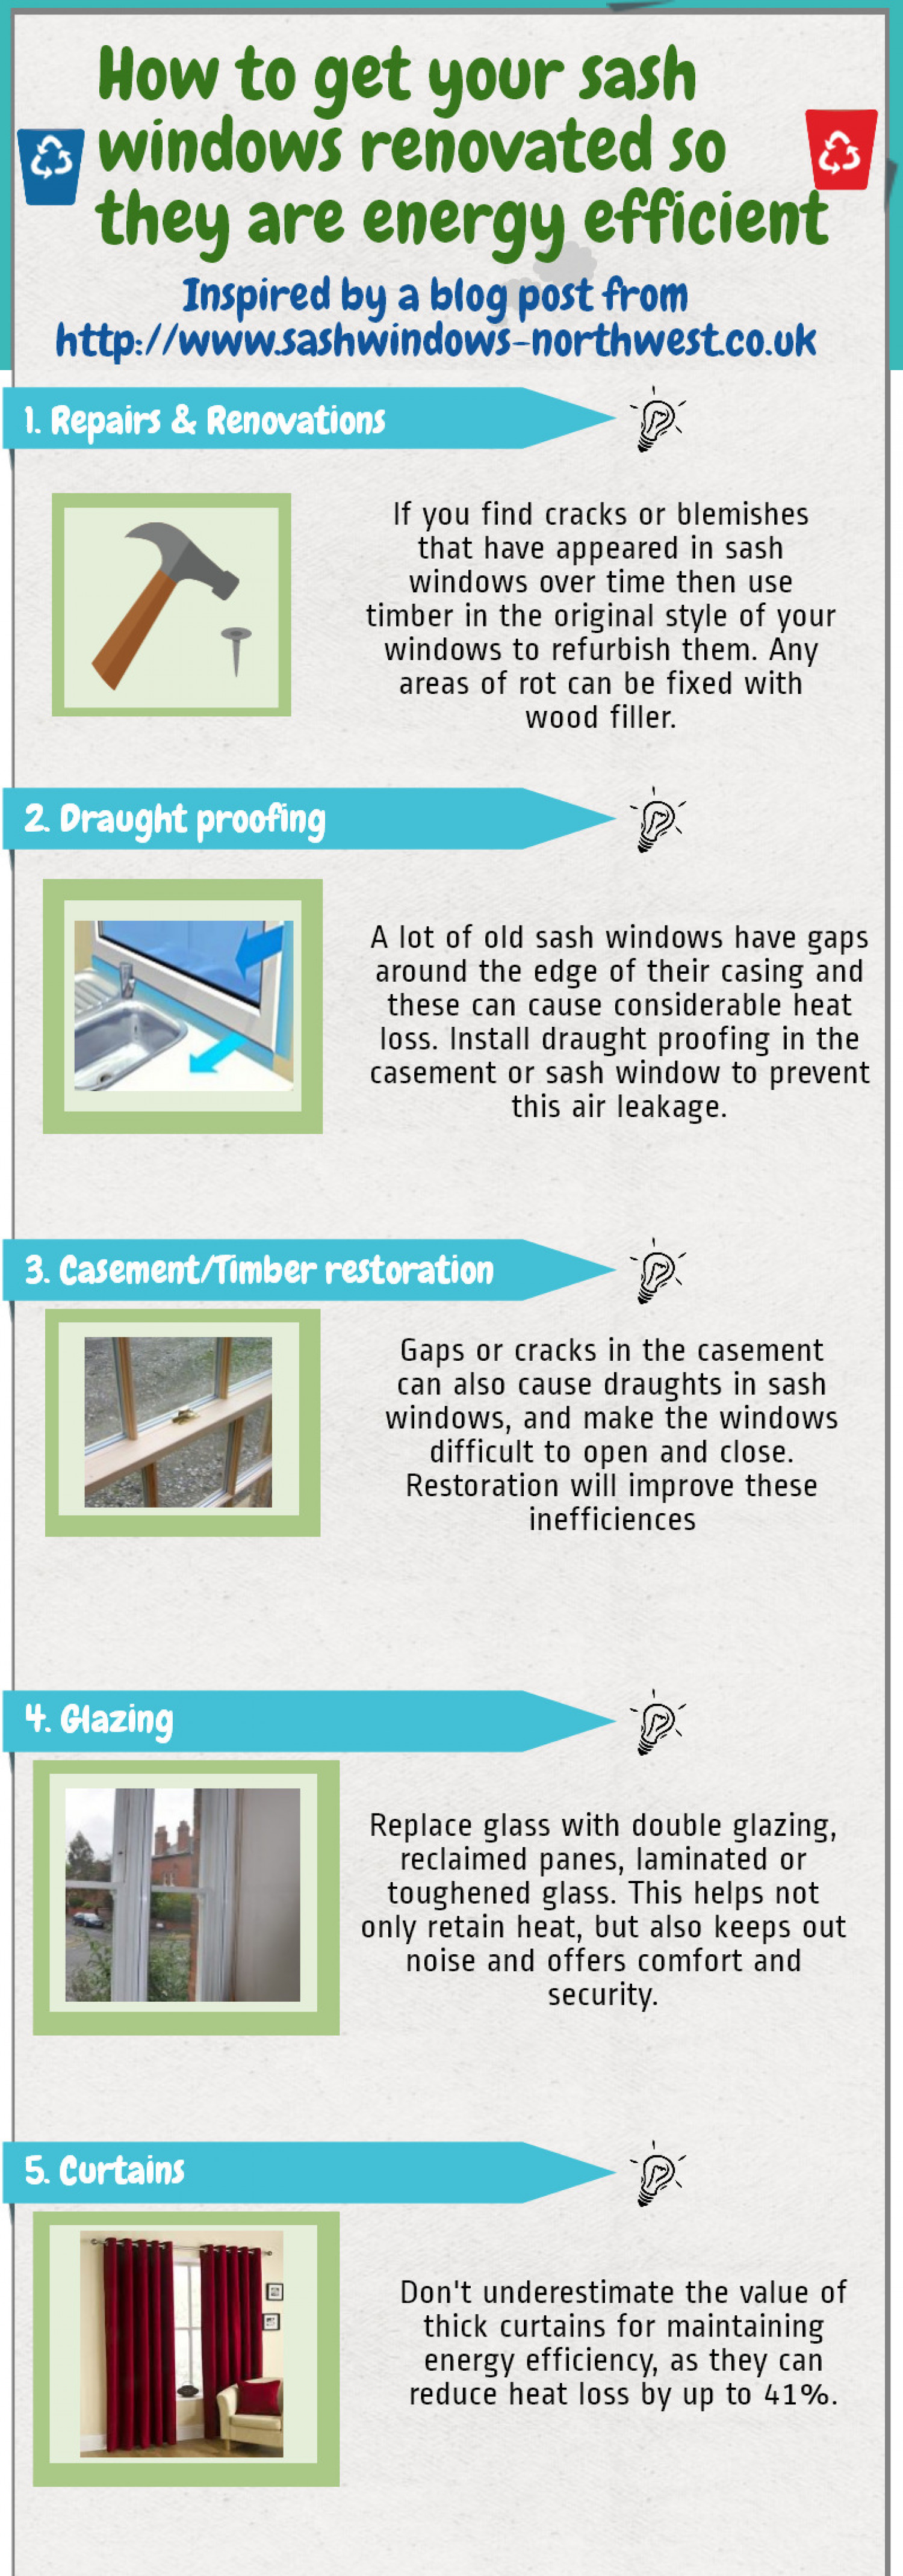 How to get you sash windows renovated so that they are energy efficient Infographic